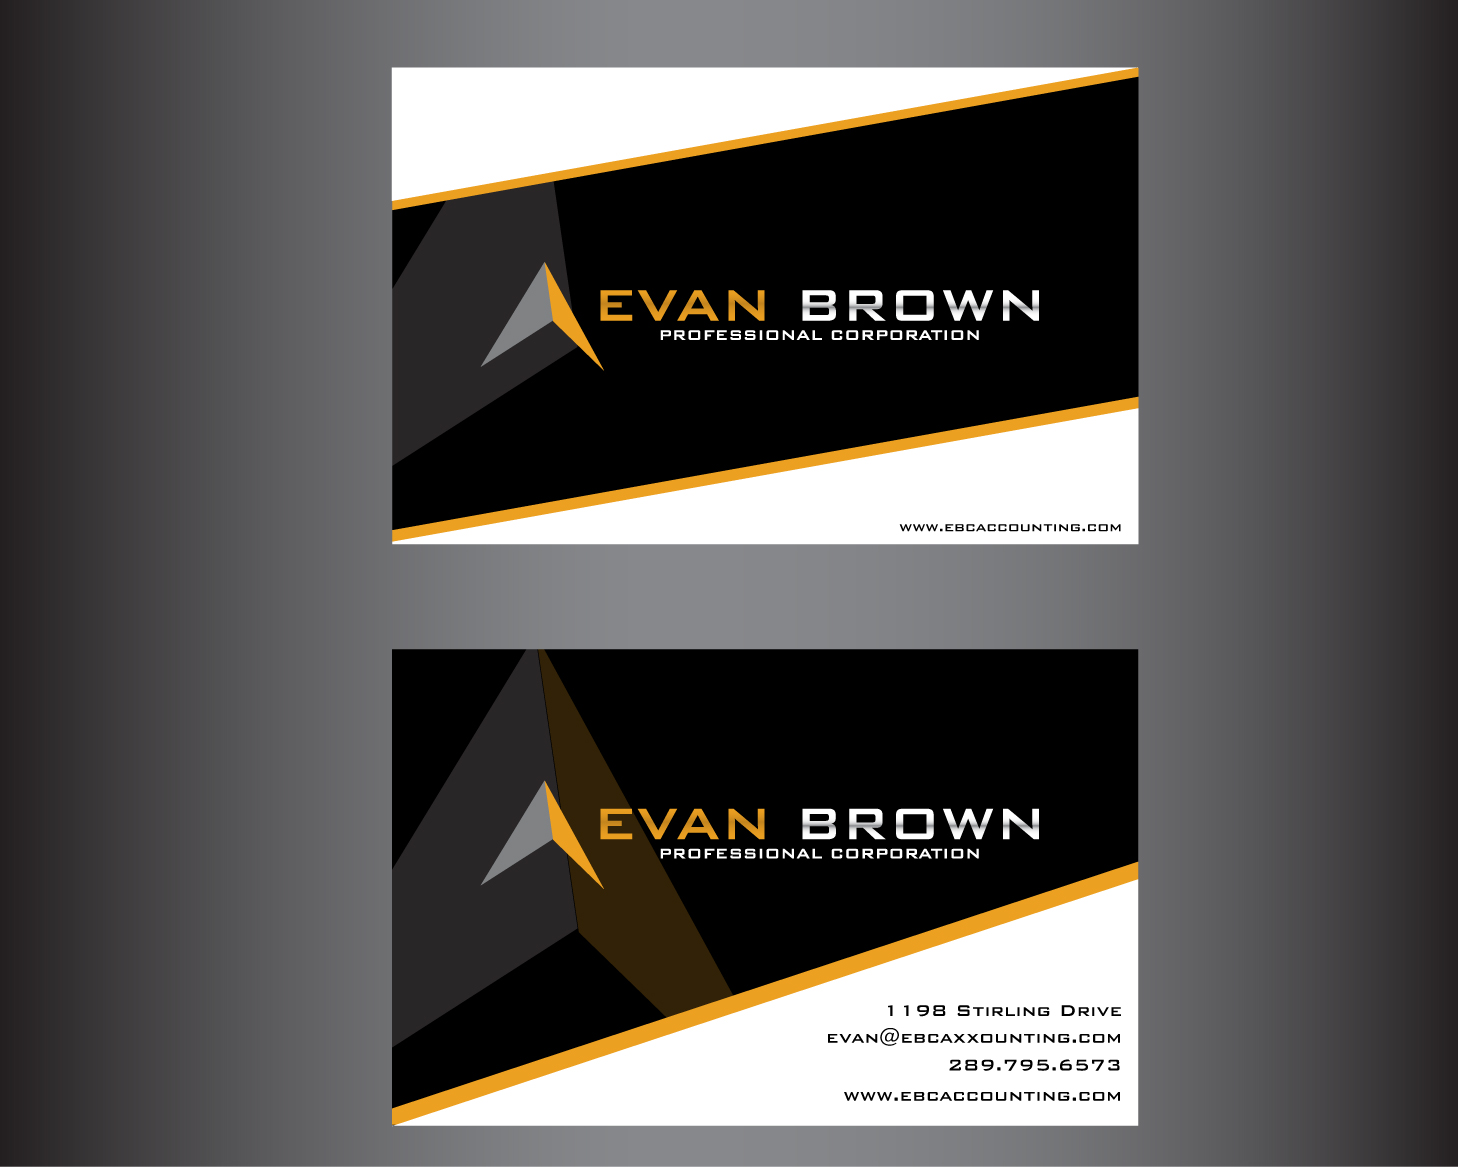 Logo Design by rA - Entry No. 217 in the Logo Design Contest Inspiring Logo Design for Evan Brown Professional Corporation.